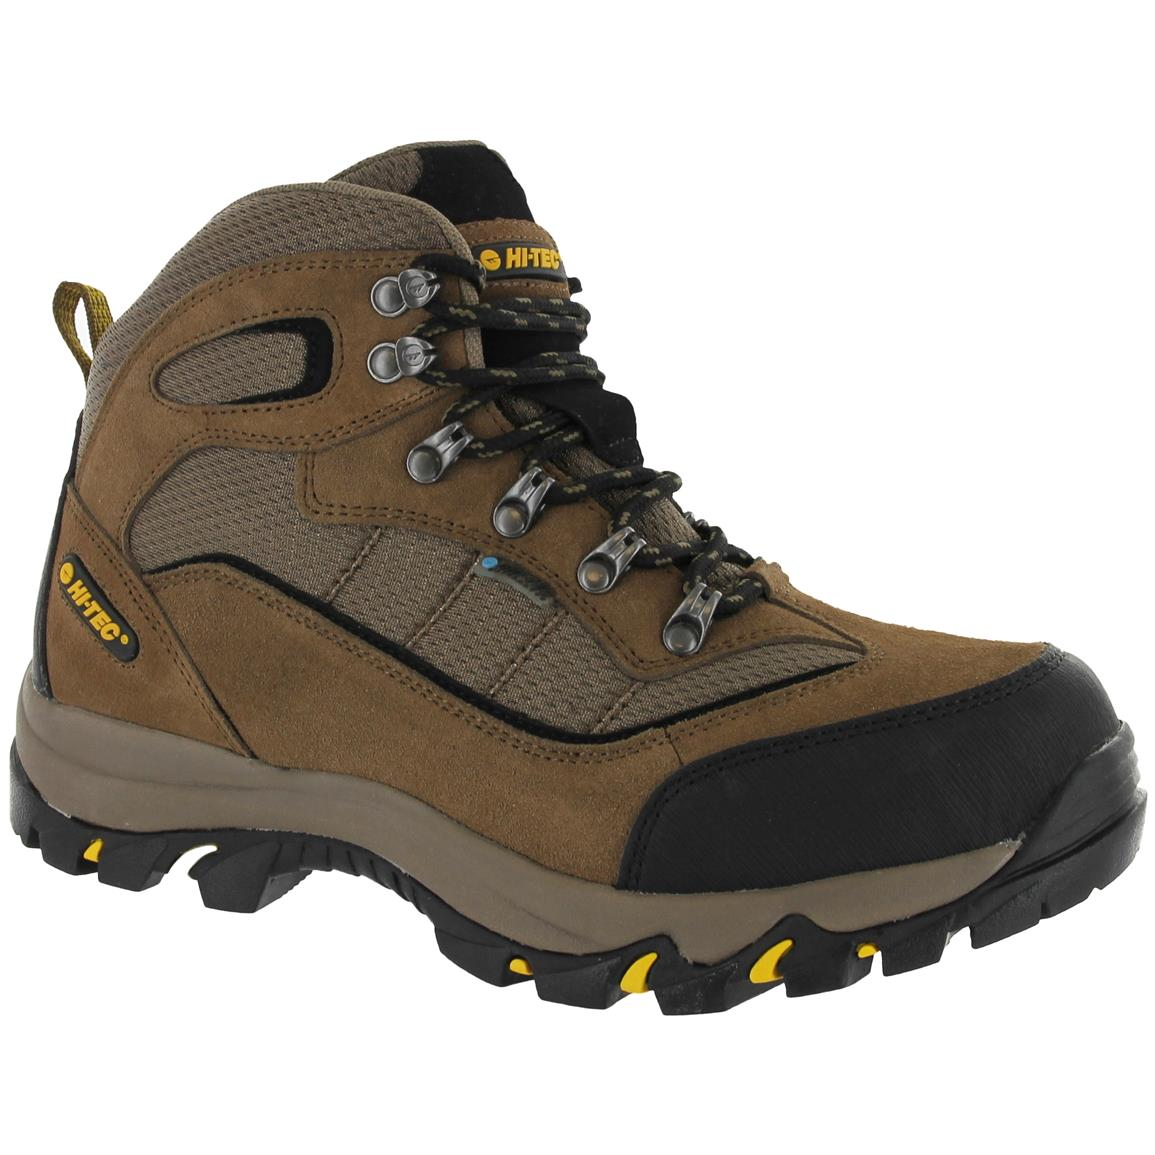 Hi-Tec Skamania Men's Mid Hiking Boots, Waterproof, Brown / Gold